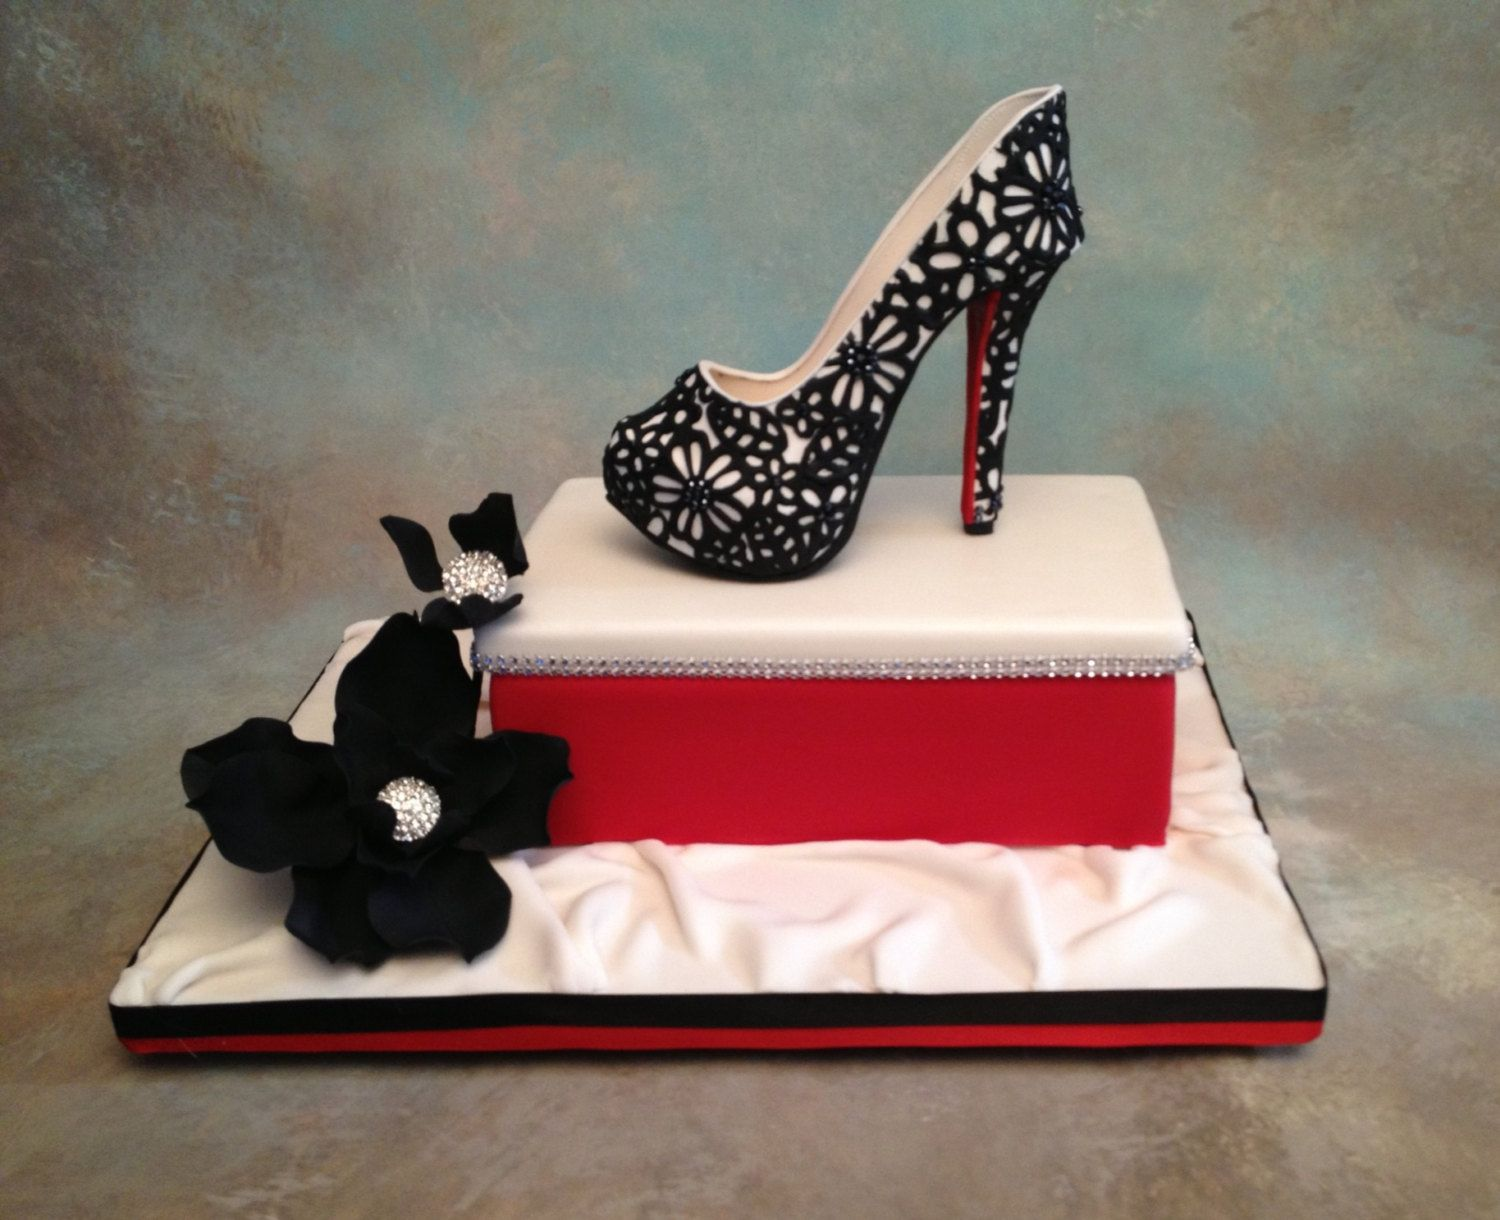 Fondant Gum Paste Shoe Cake Topper